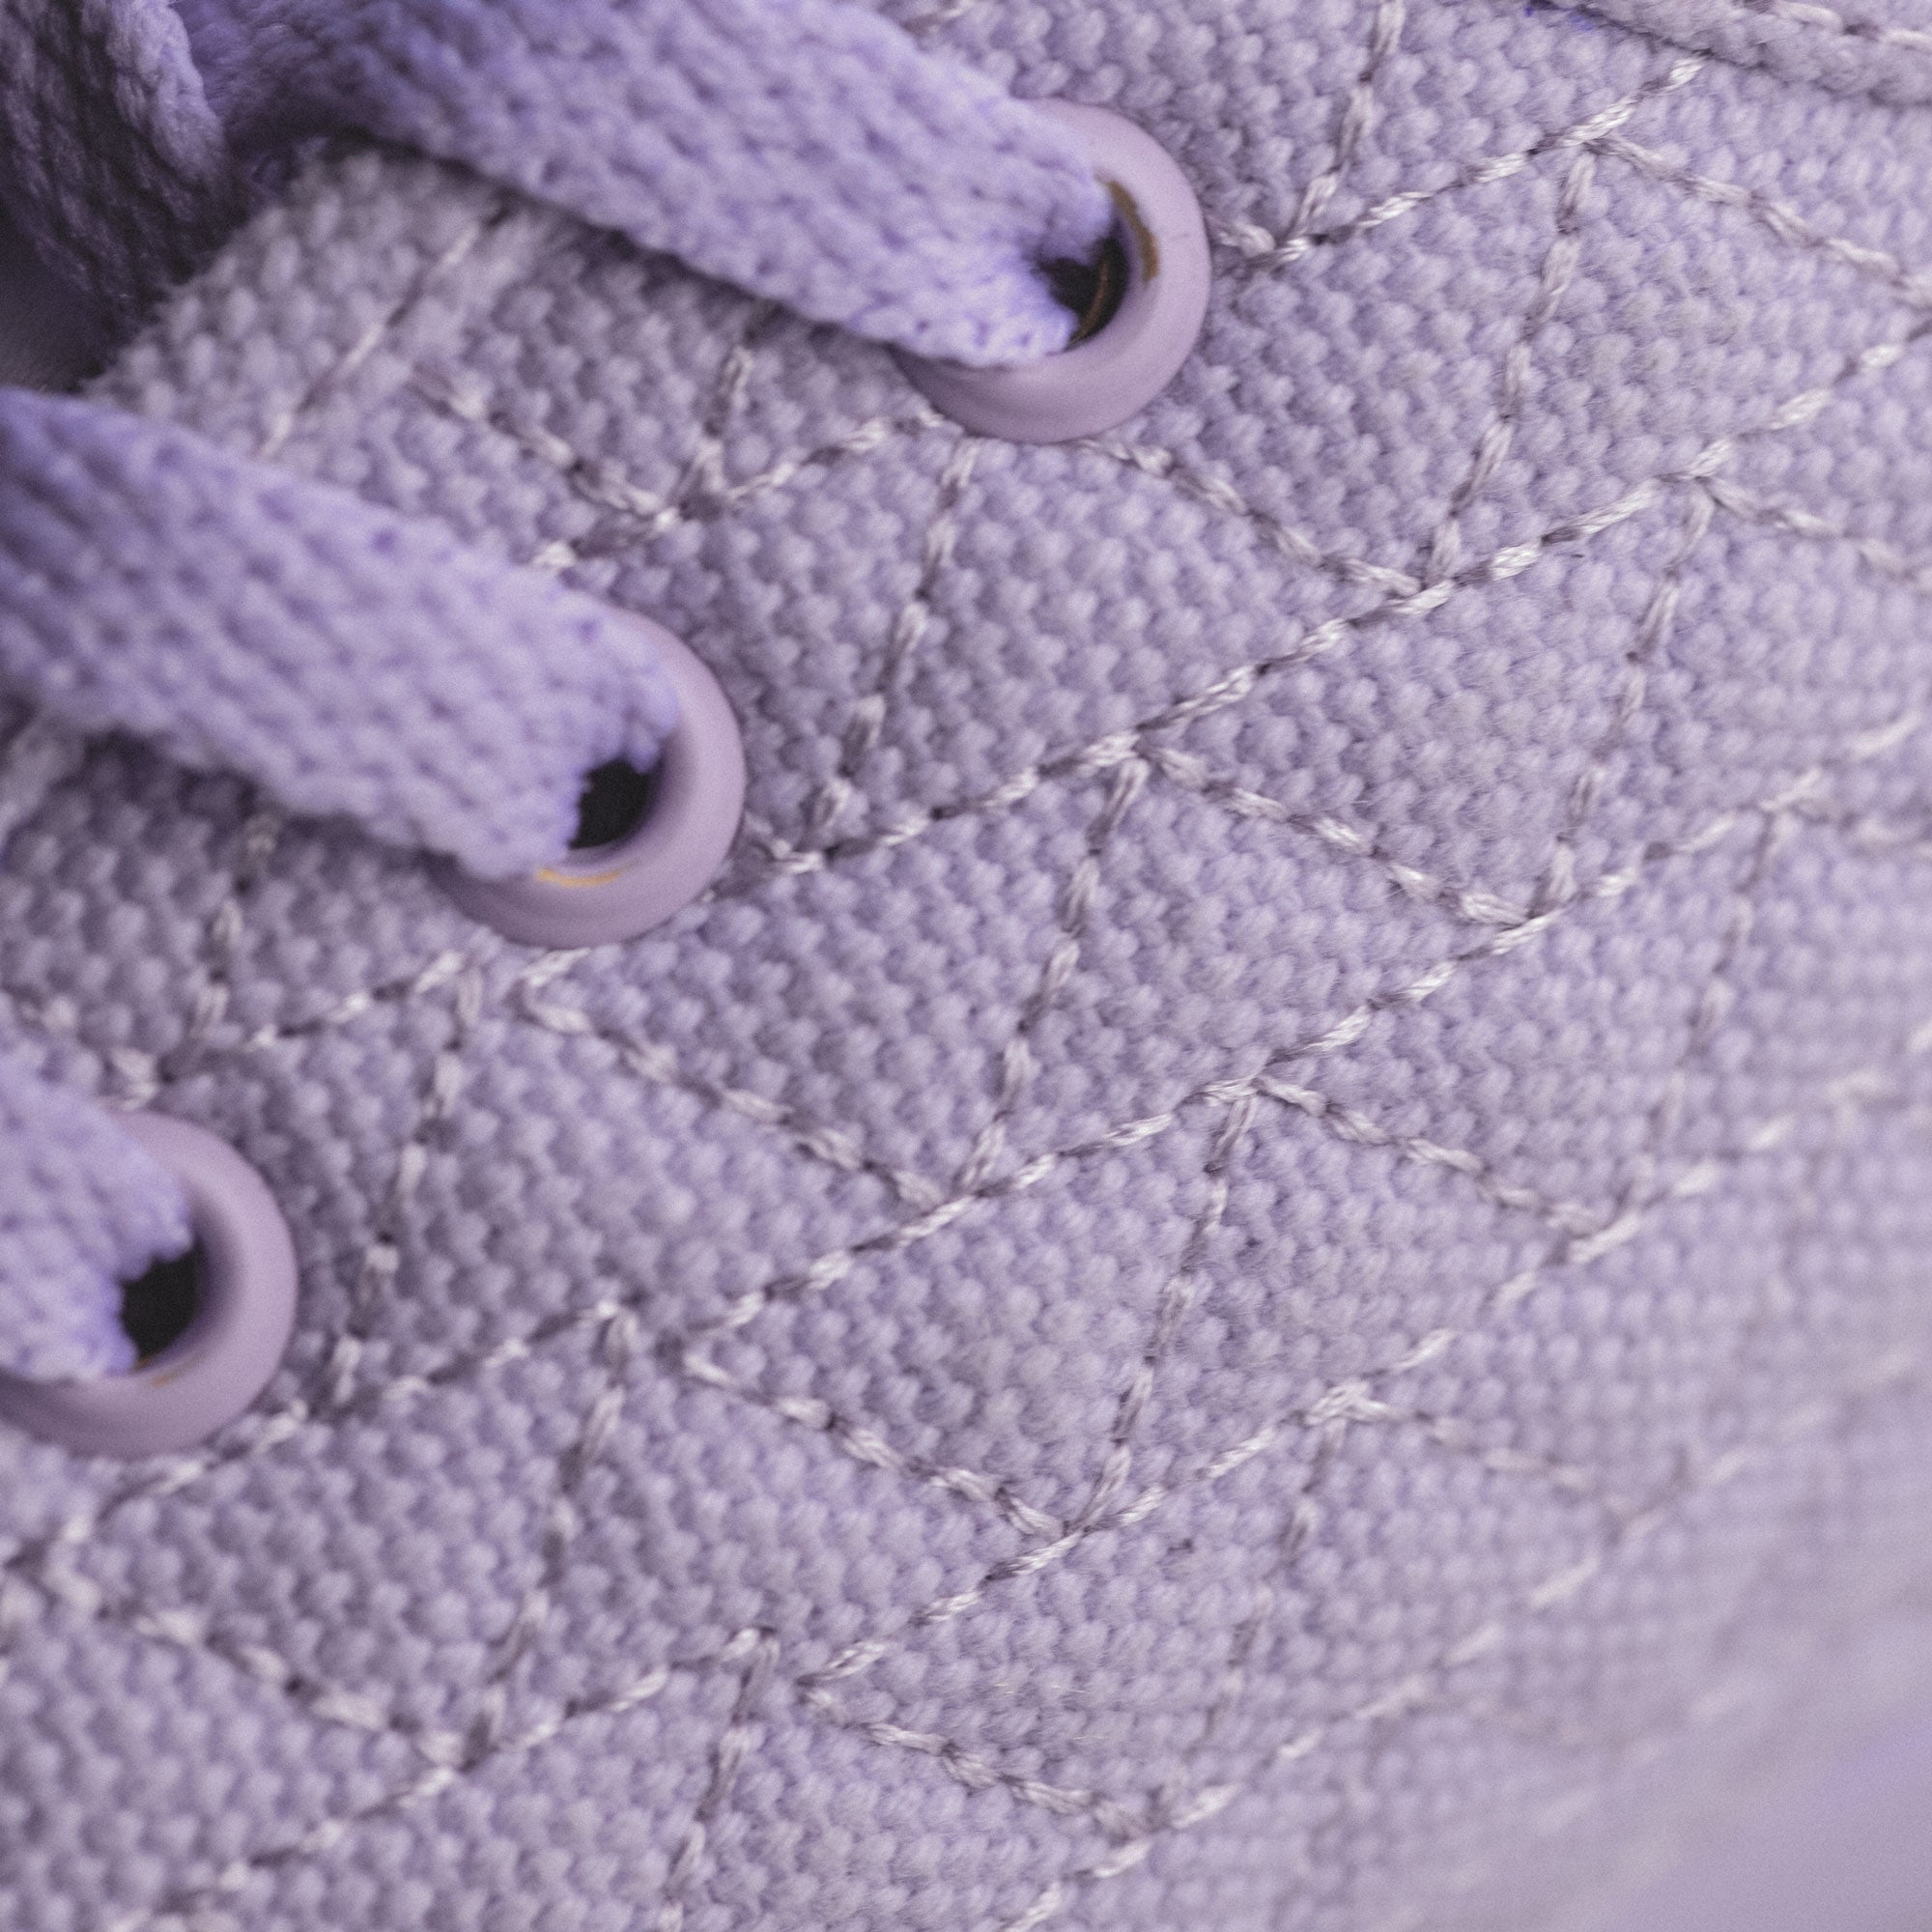 yaya lavender roamer showing laces of the shoe